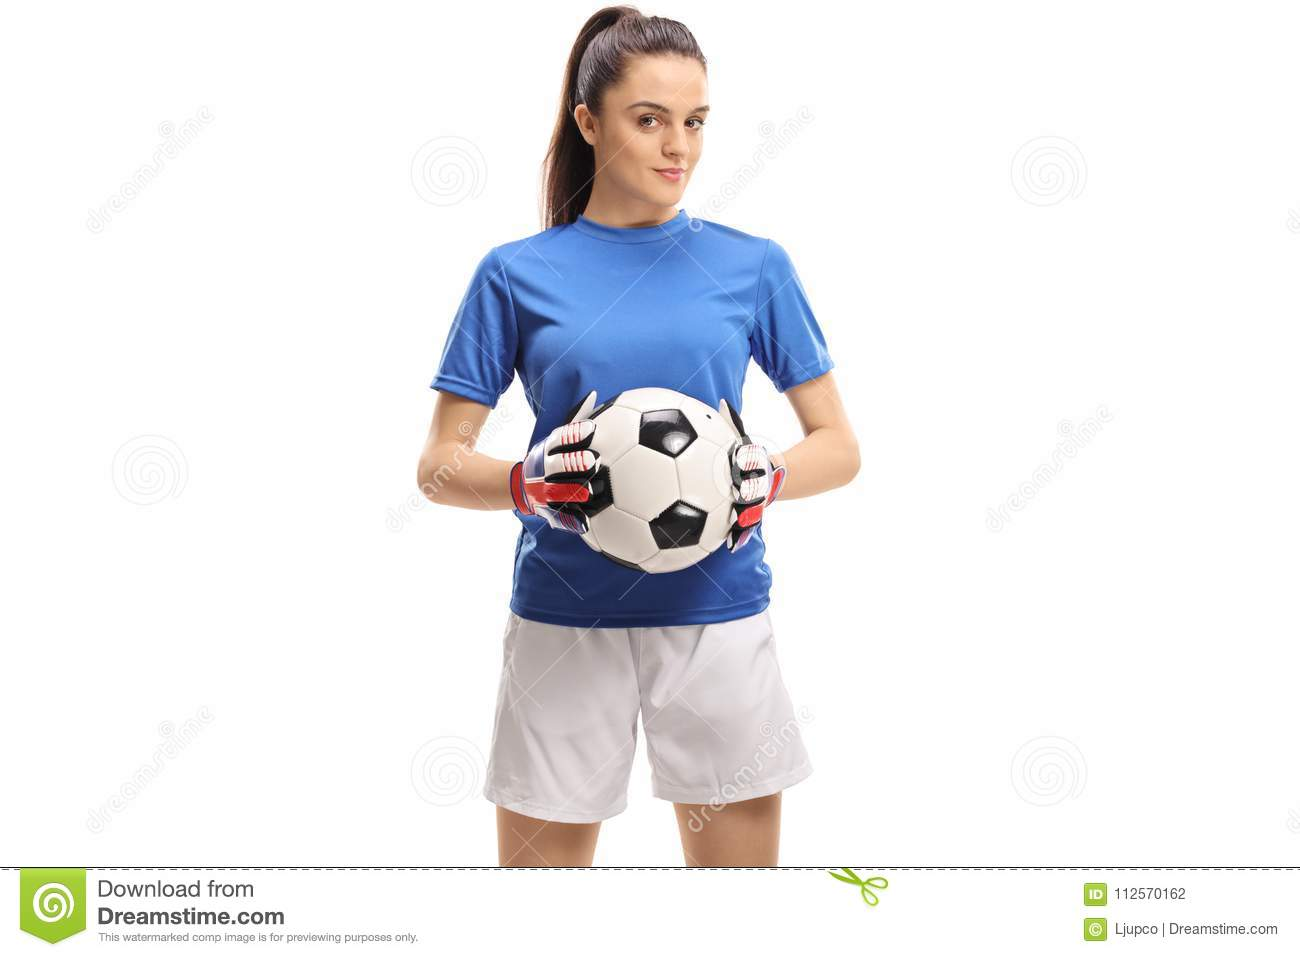 Female Goalkeeper Holding A Football Stock Photo - Image of gear ... 55396c4c56